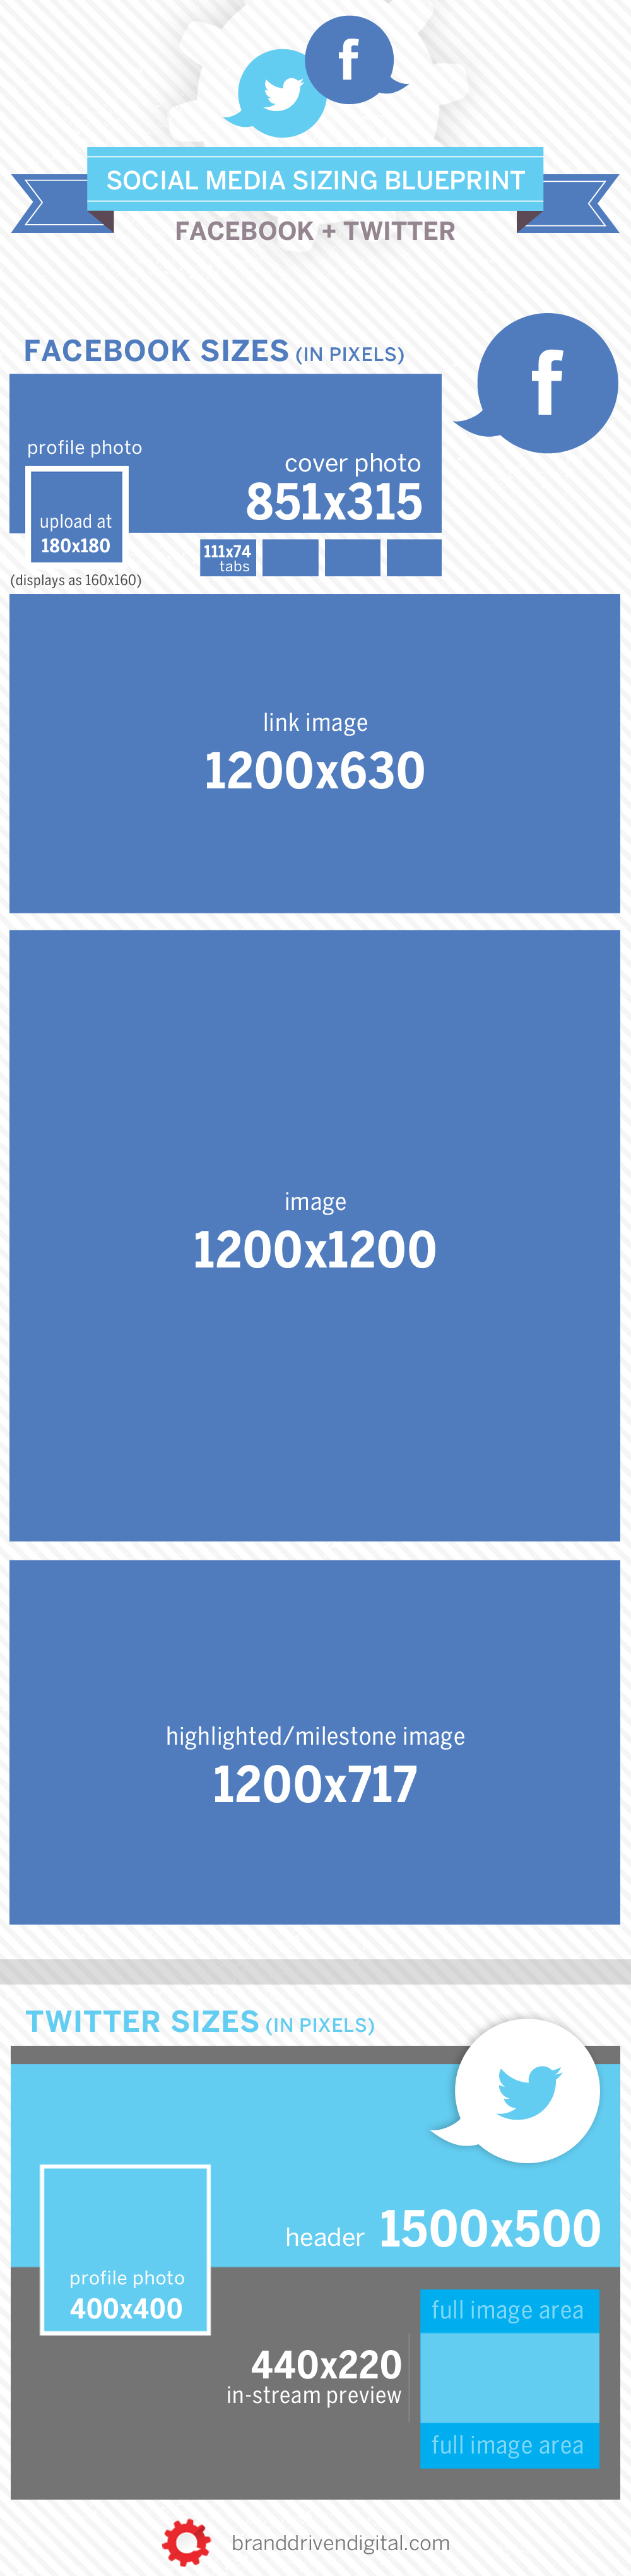 Social media image size blueprint facebook twitter facebook twitter social image size malvernweather Gallery